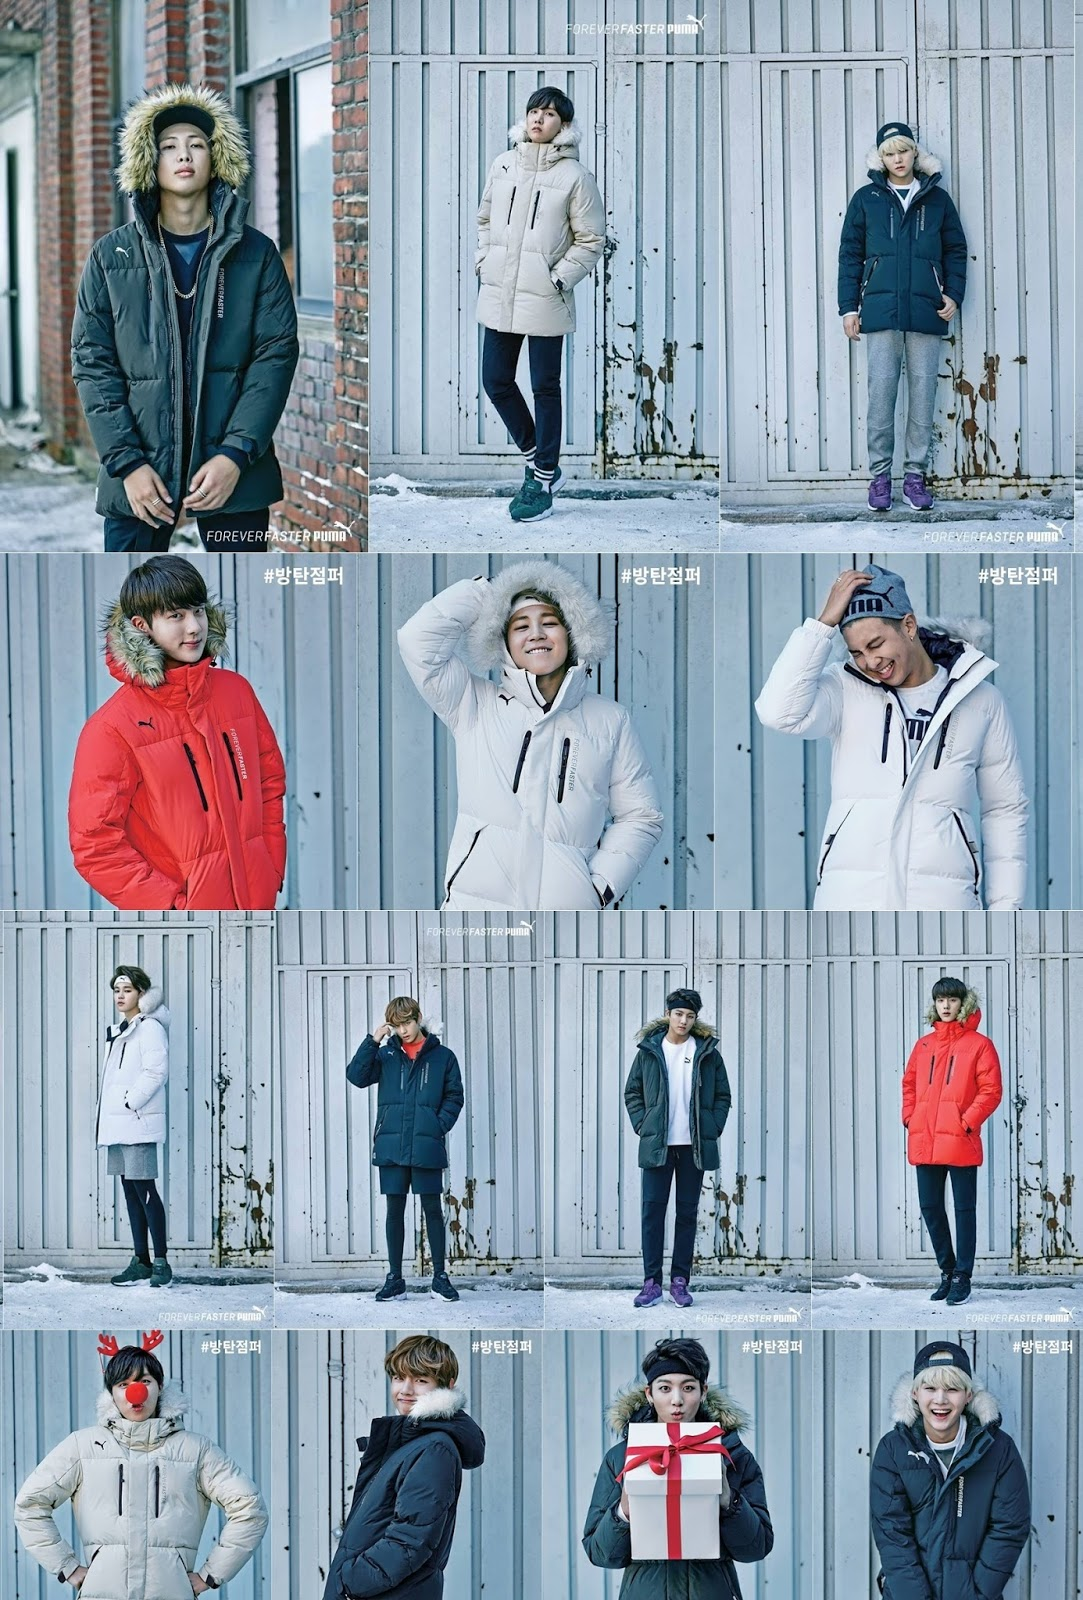 Cool Fall Wallpaper Bts Put On Their Stylish Winter Fashion With Puma Daily